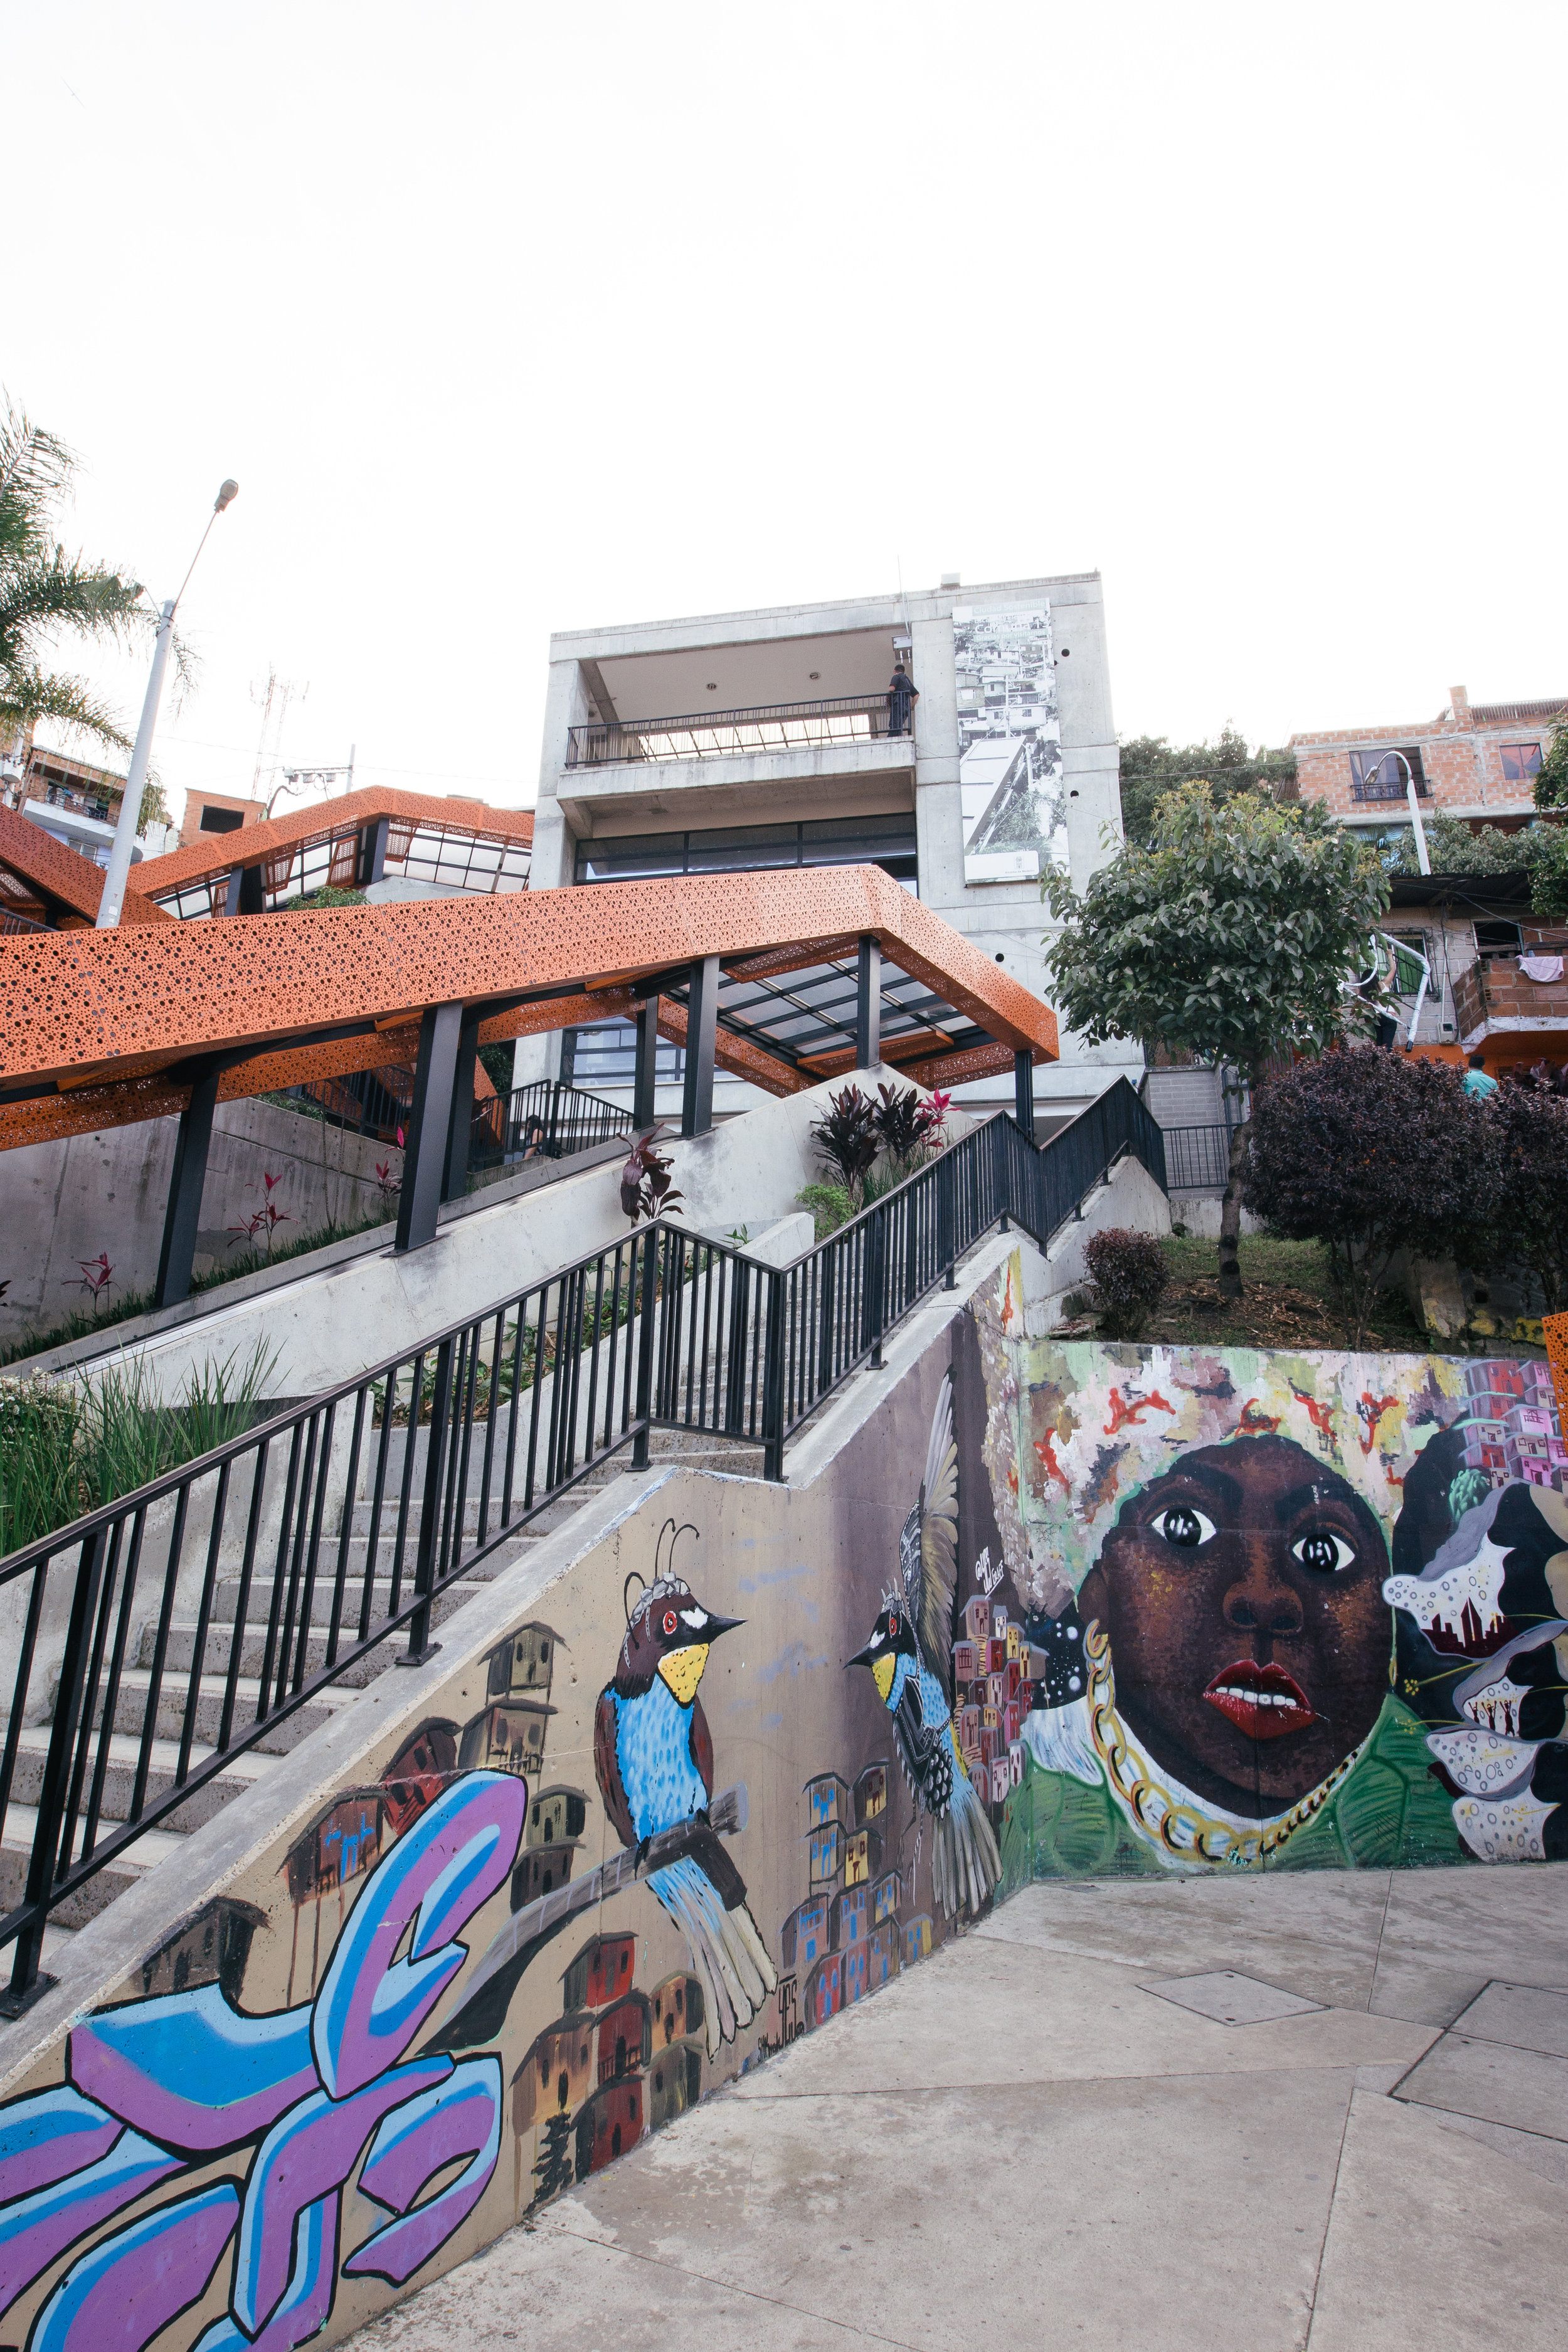 Six escalators scaling 384 meters run the hills in Comuna 13, a once dangerous and inaccessible area run primarily by drug traffickers and guerillas. It's an innovative urban project that has helped open the neighbourhood to new people and fresh ideas, and allowed tourism and enterprise to grow.